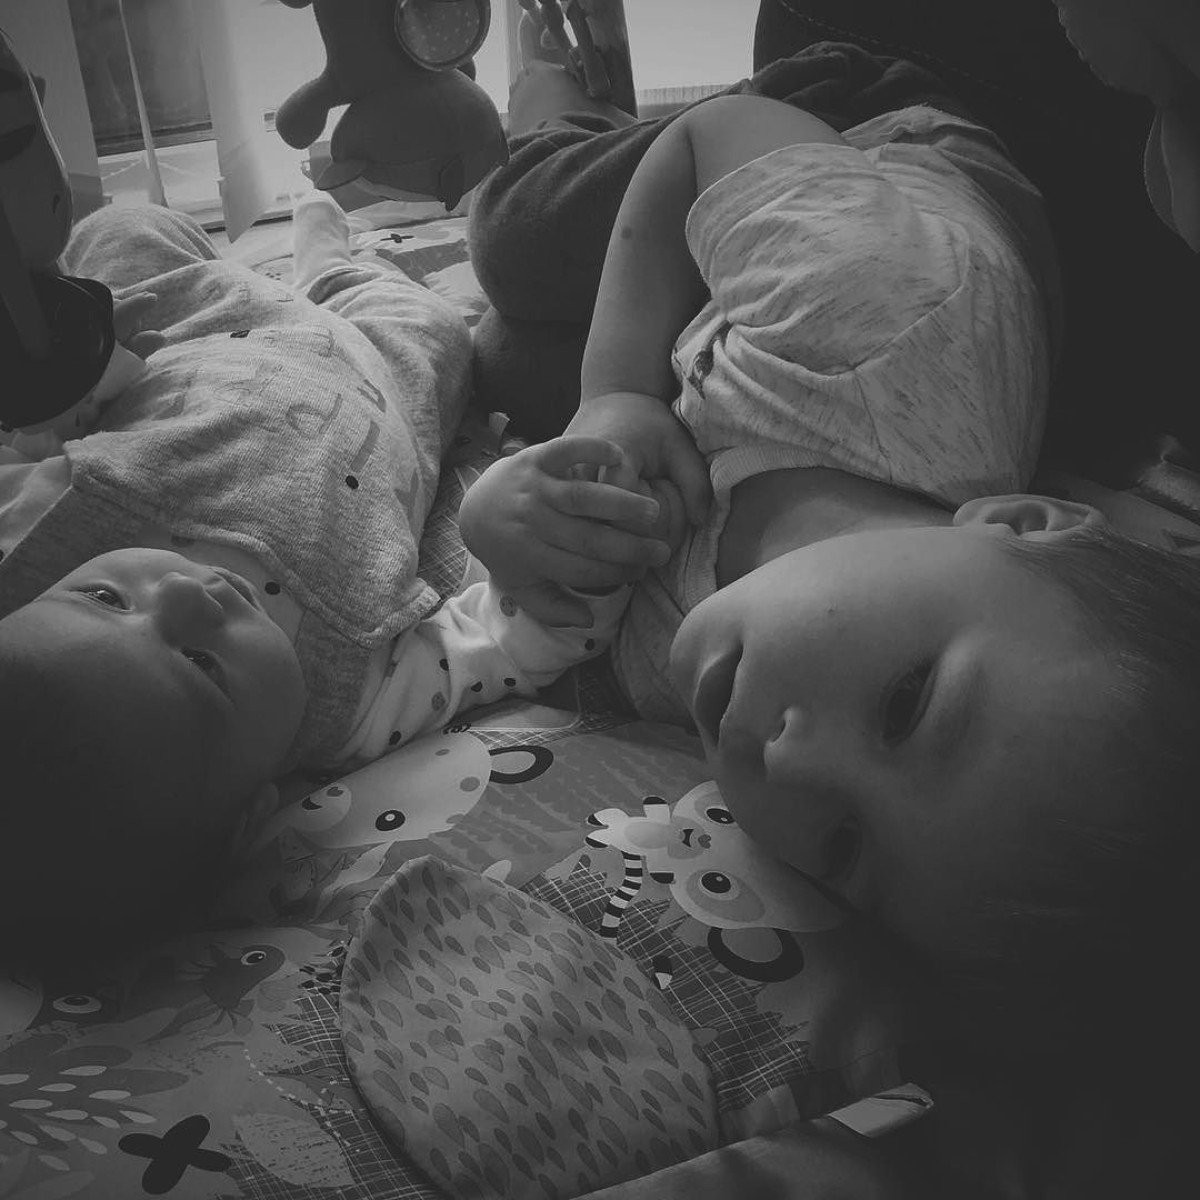 Our month in insta-snaps; October 2016 - Newborn baby boy and his toddler brother holding hands on activity mat